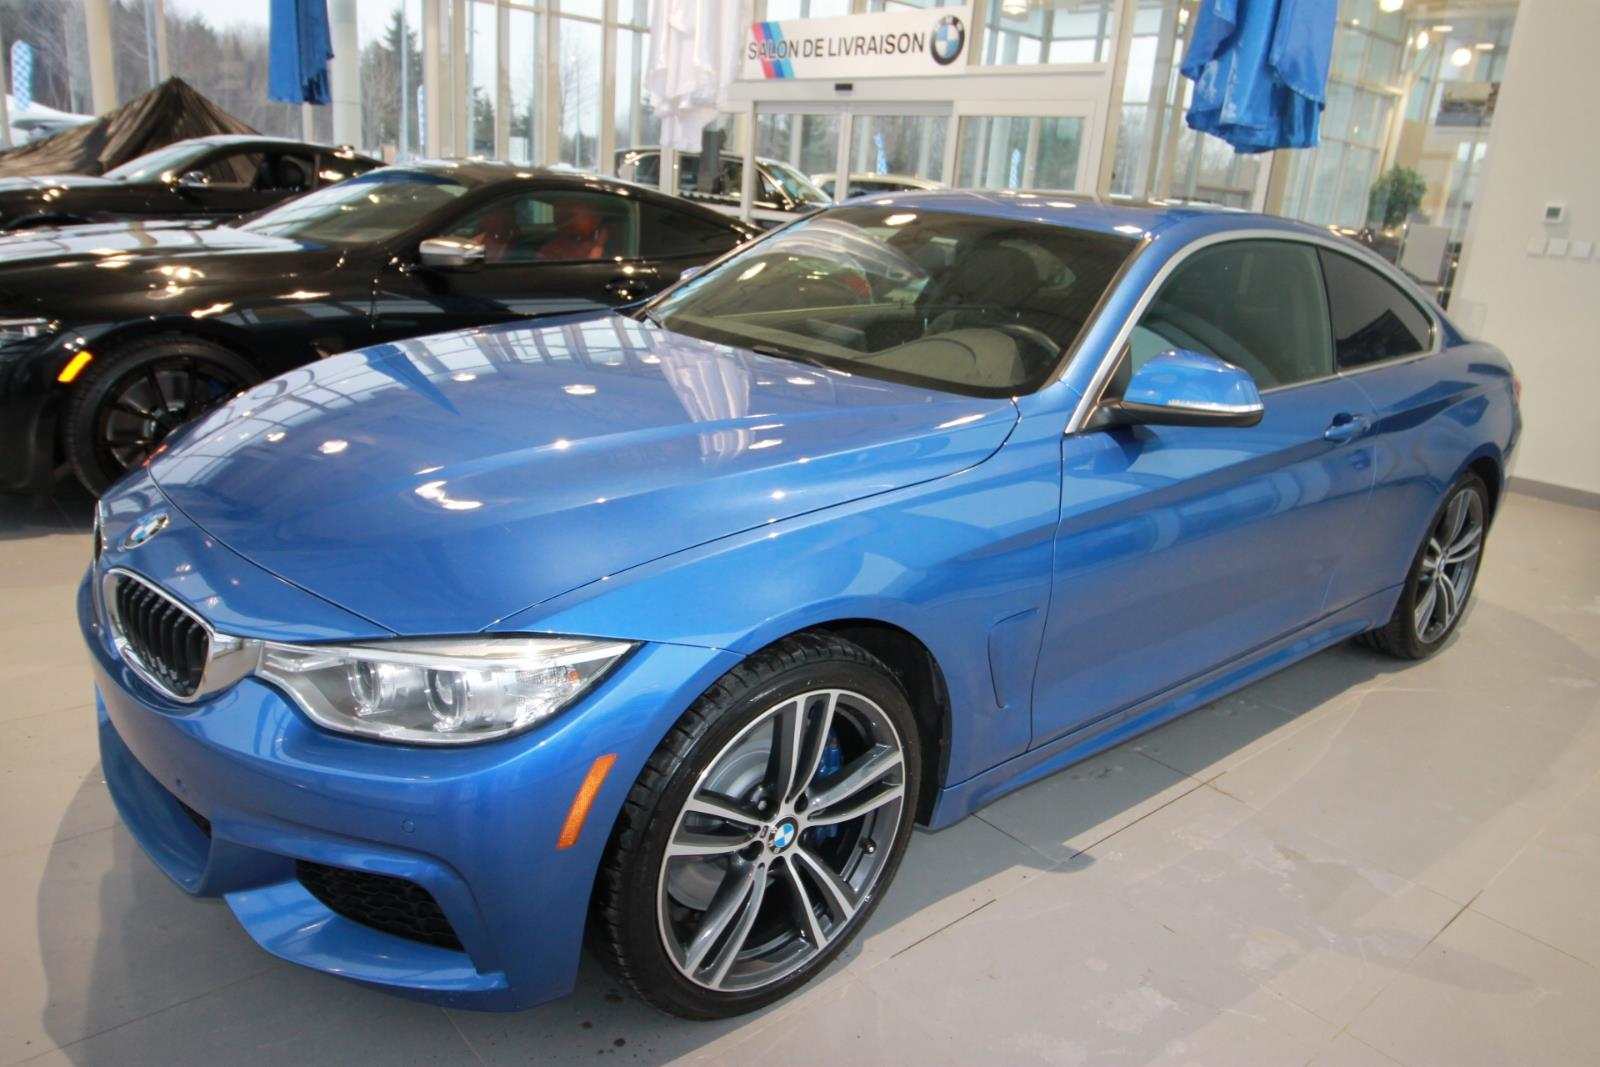 BMW 4 Series 2015 2dr Cpe 435i xDrive AWD #19-242A